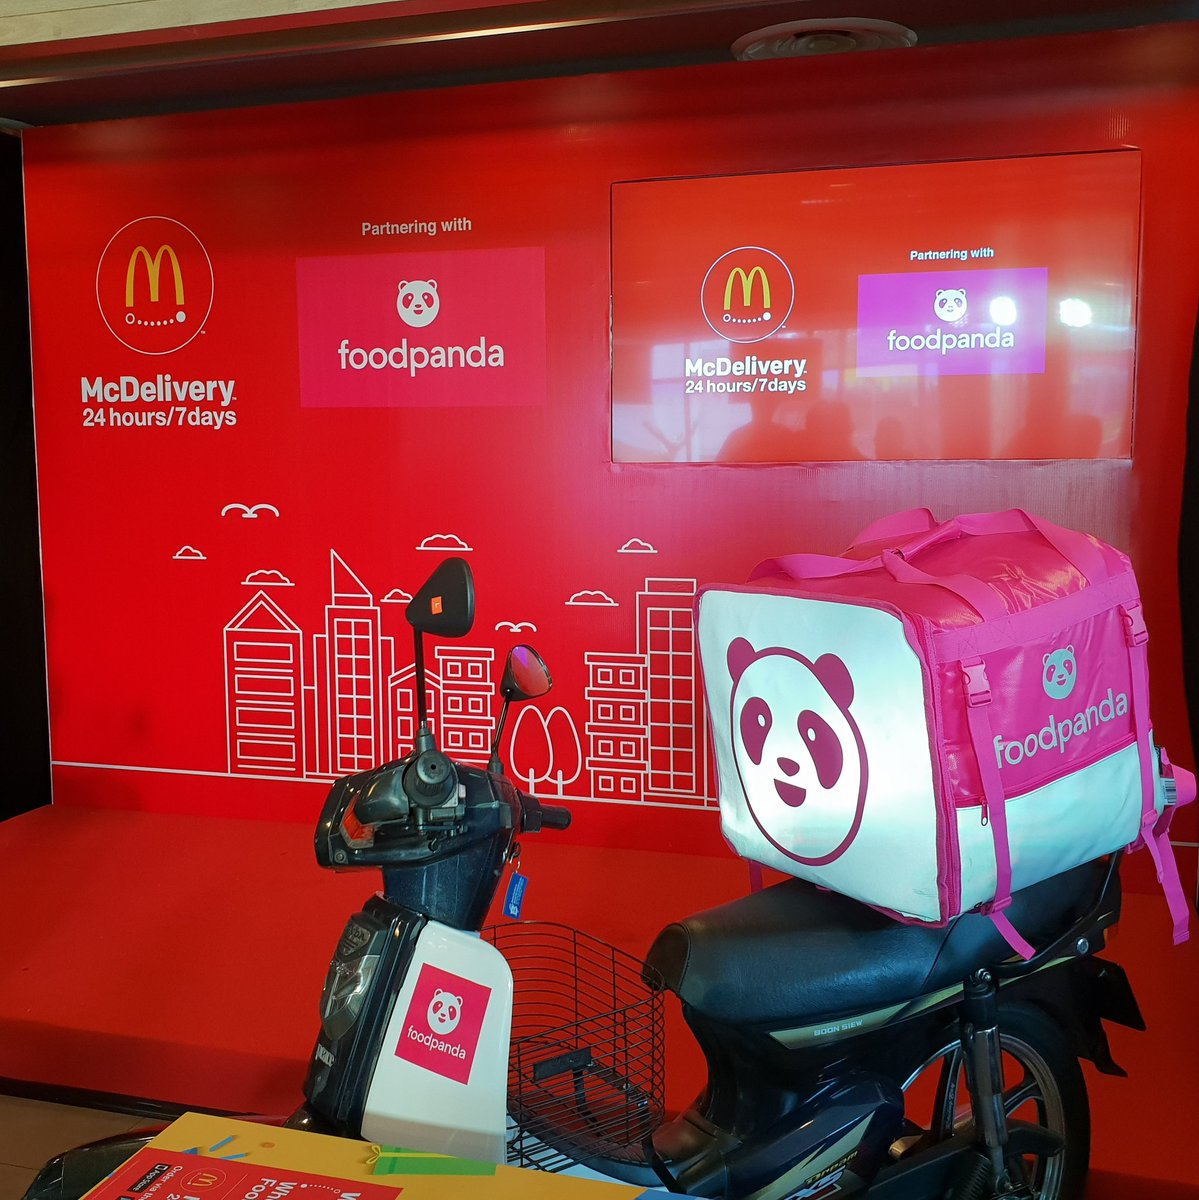 mcdonald delivery number in malaysia